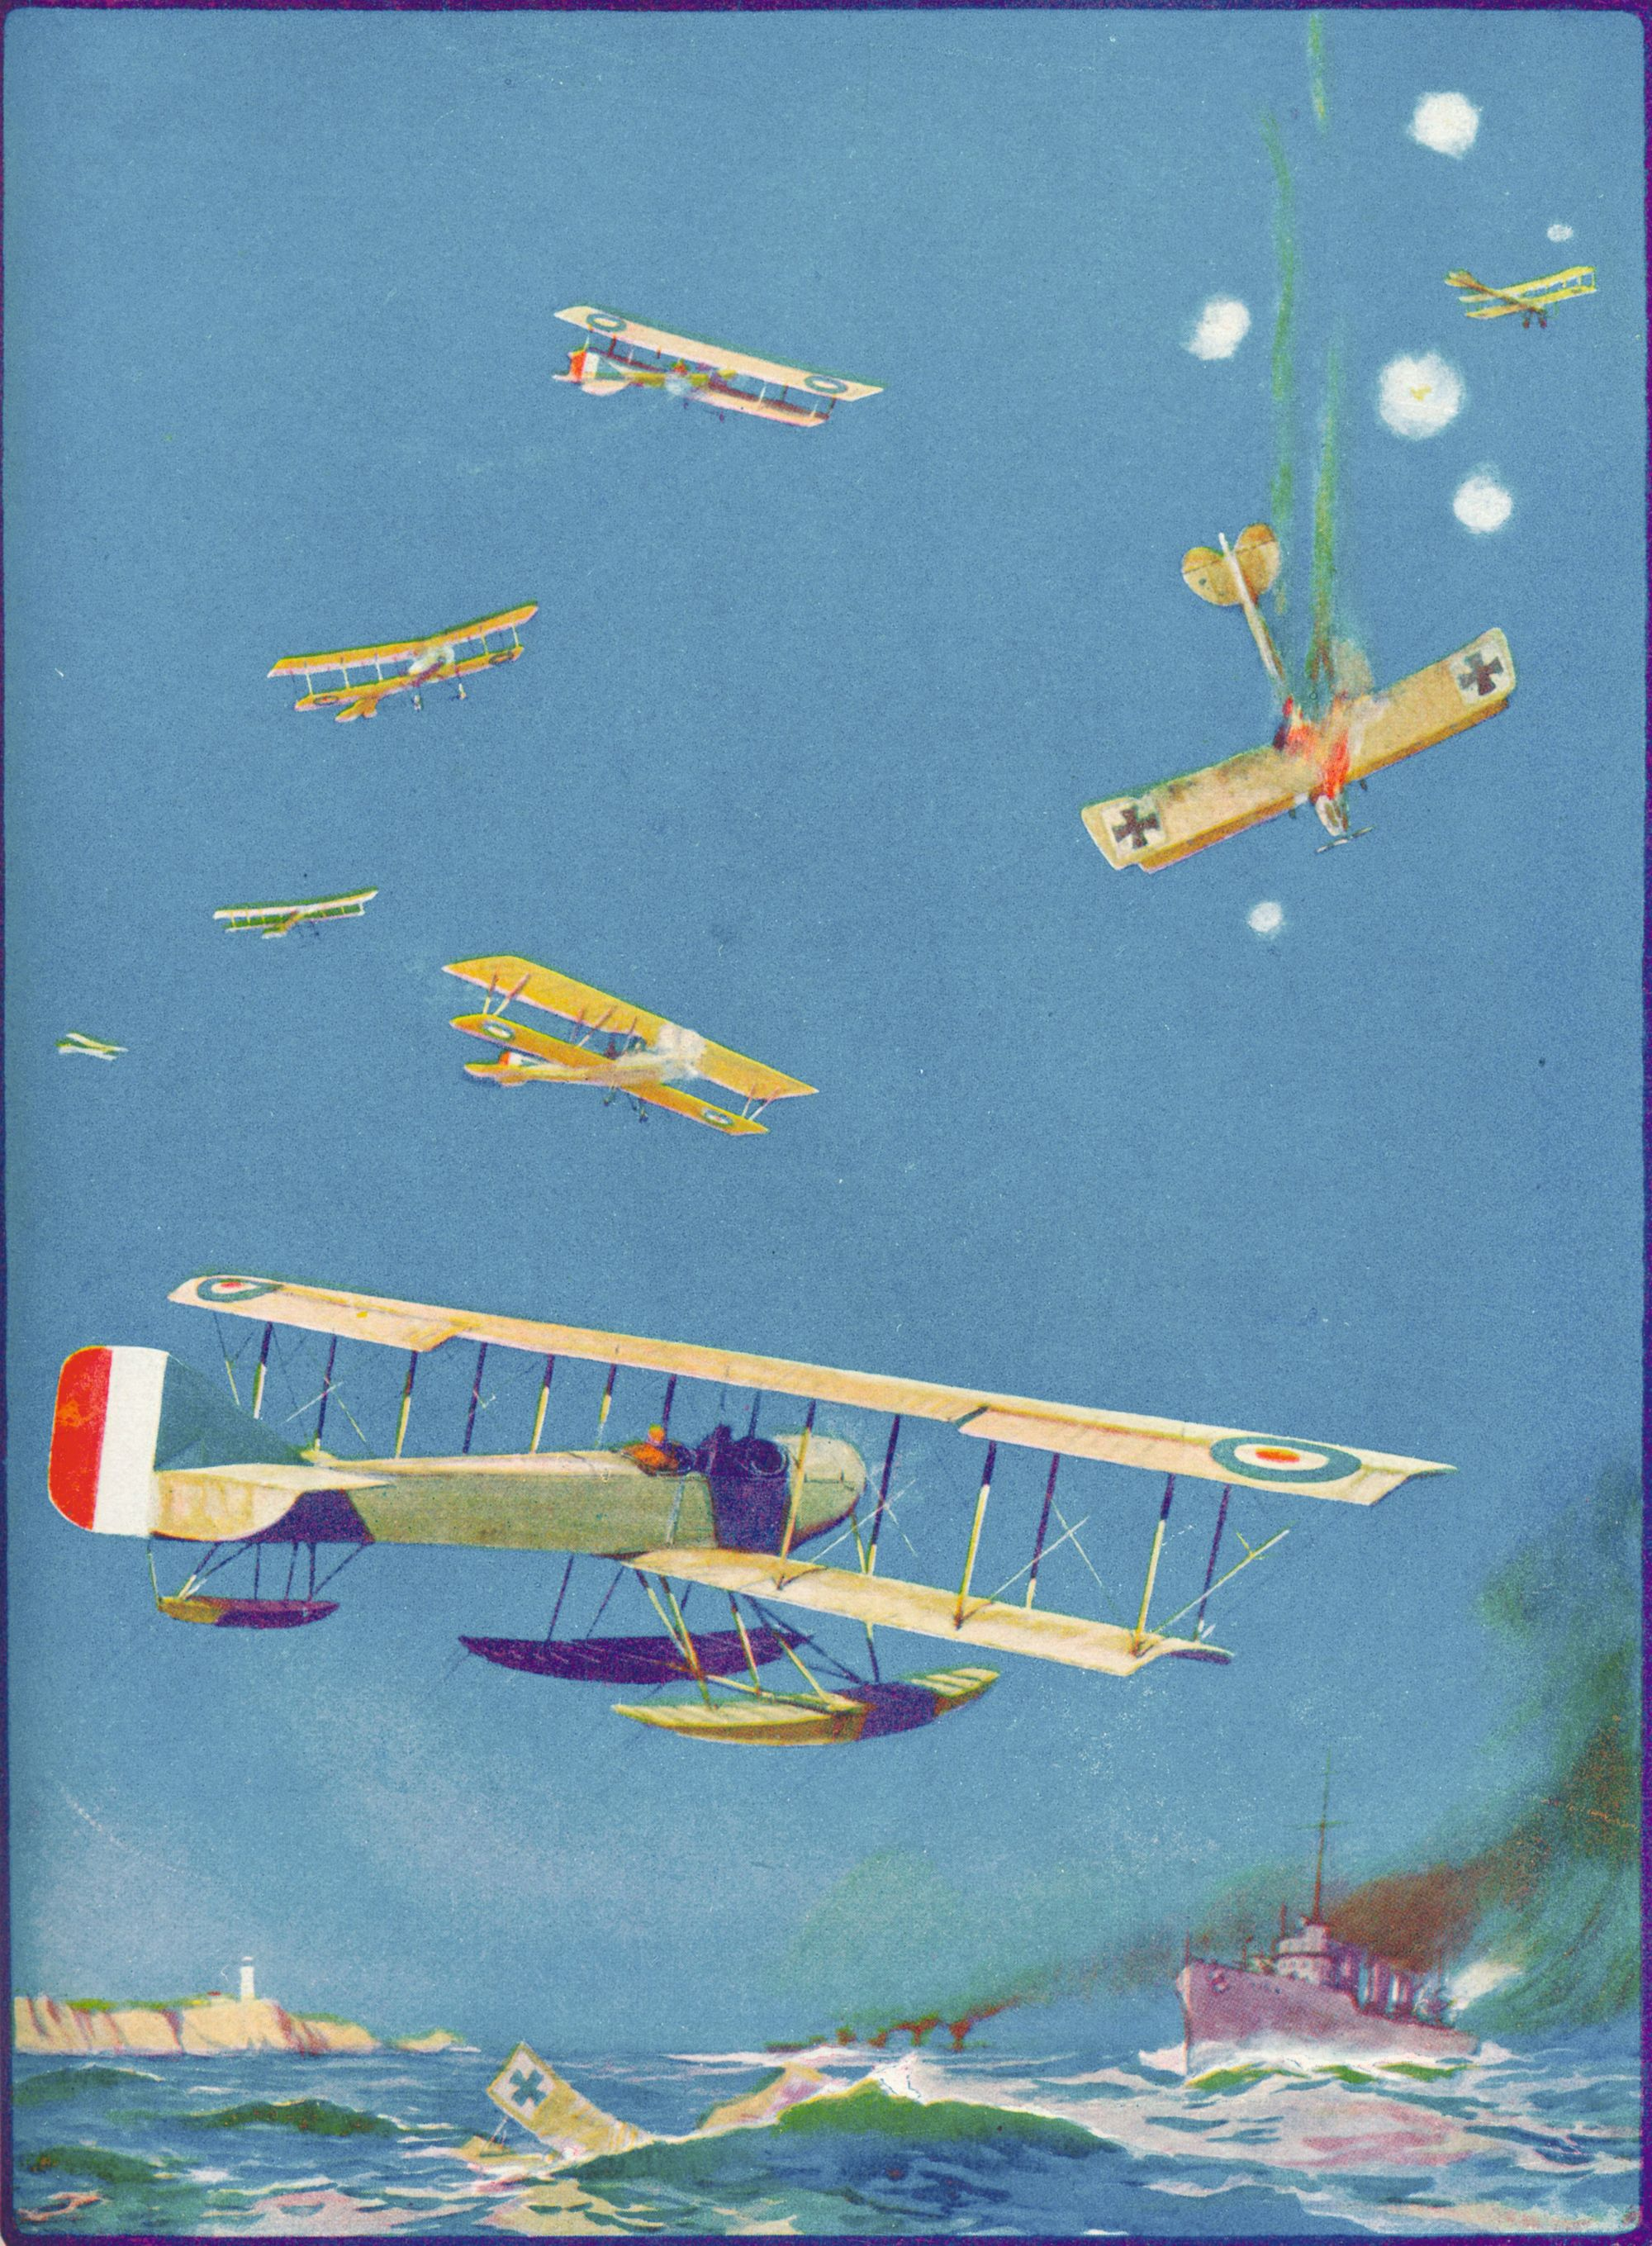 « Défense des côtes », illustration dans The Wonder Book of Aircraft for Boys and Girls, 1919